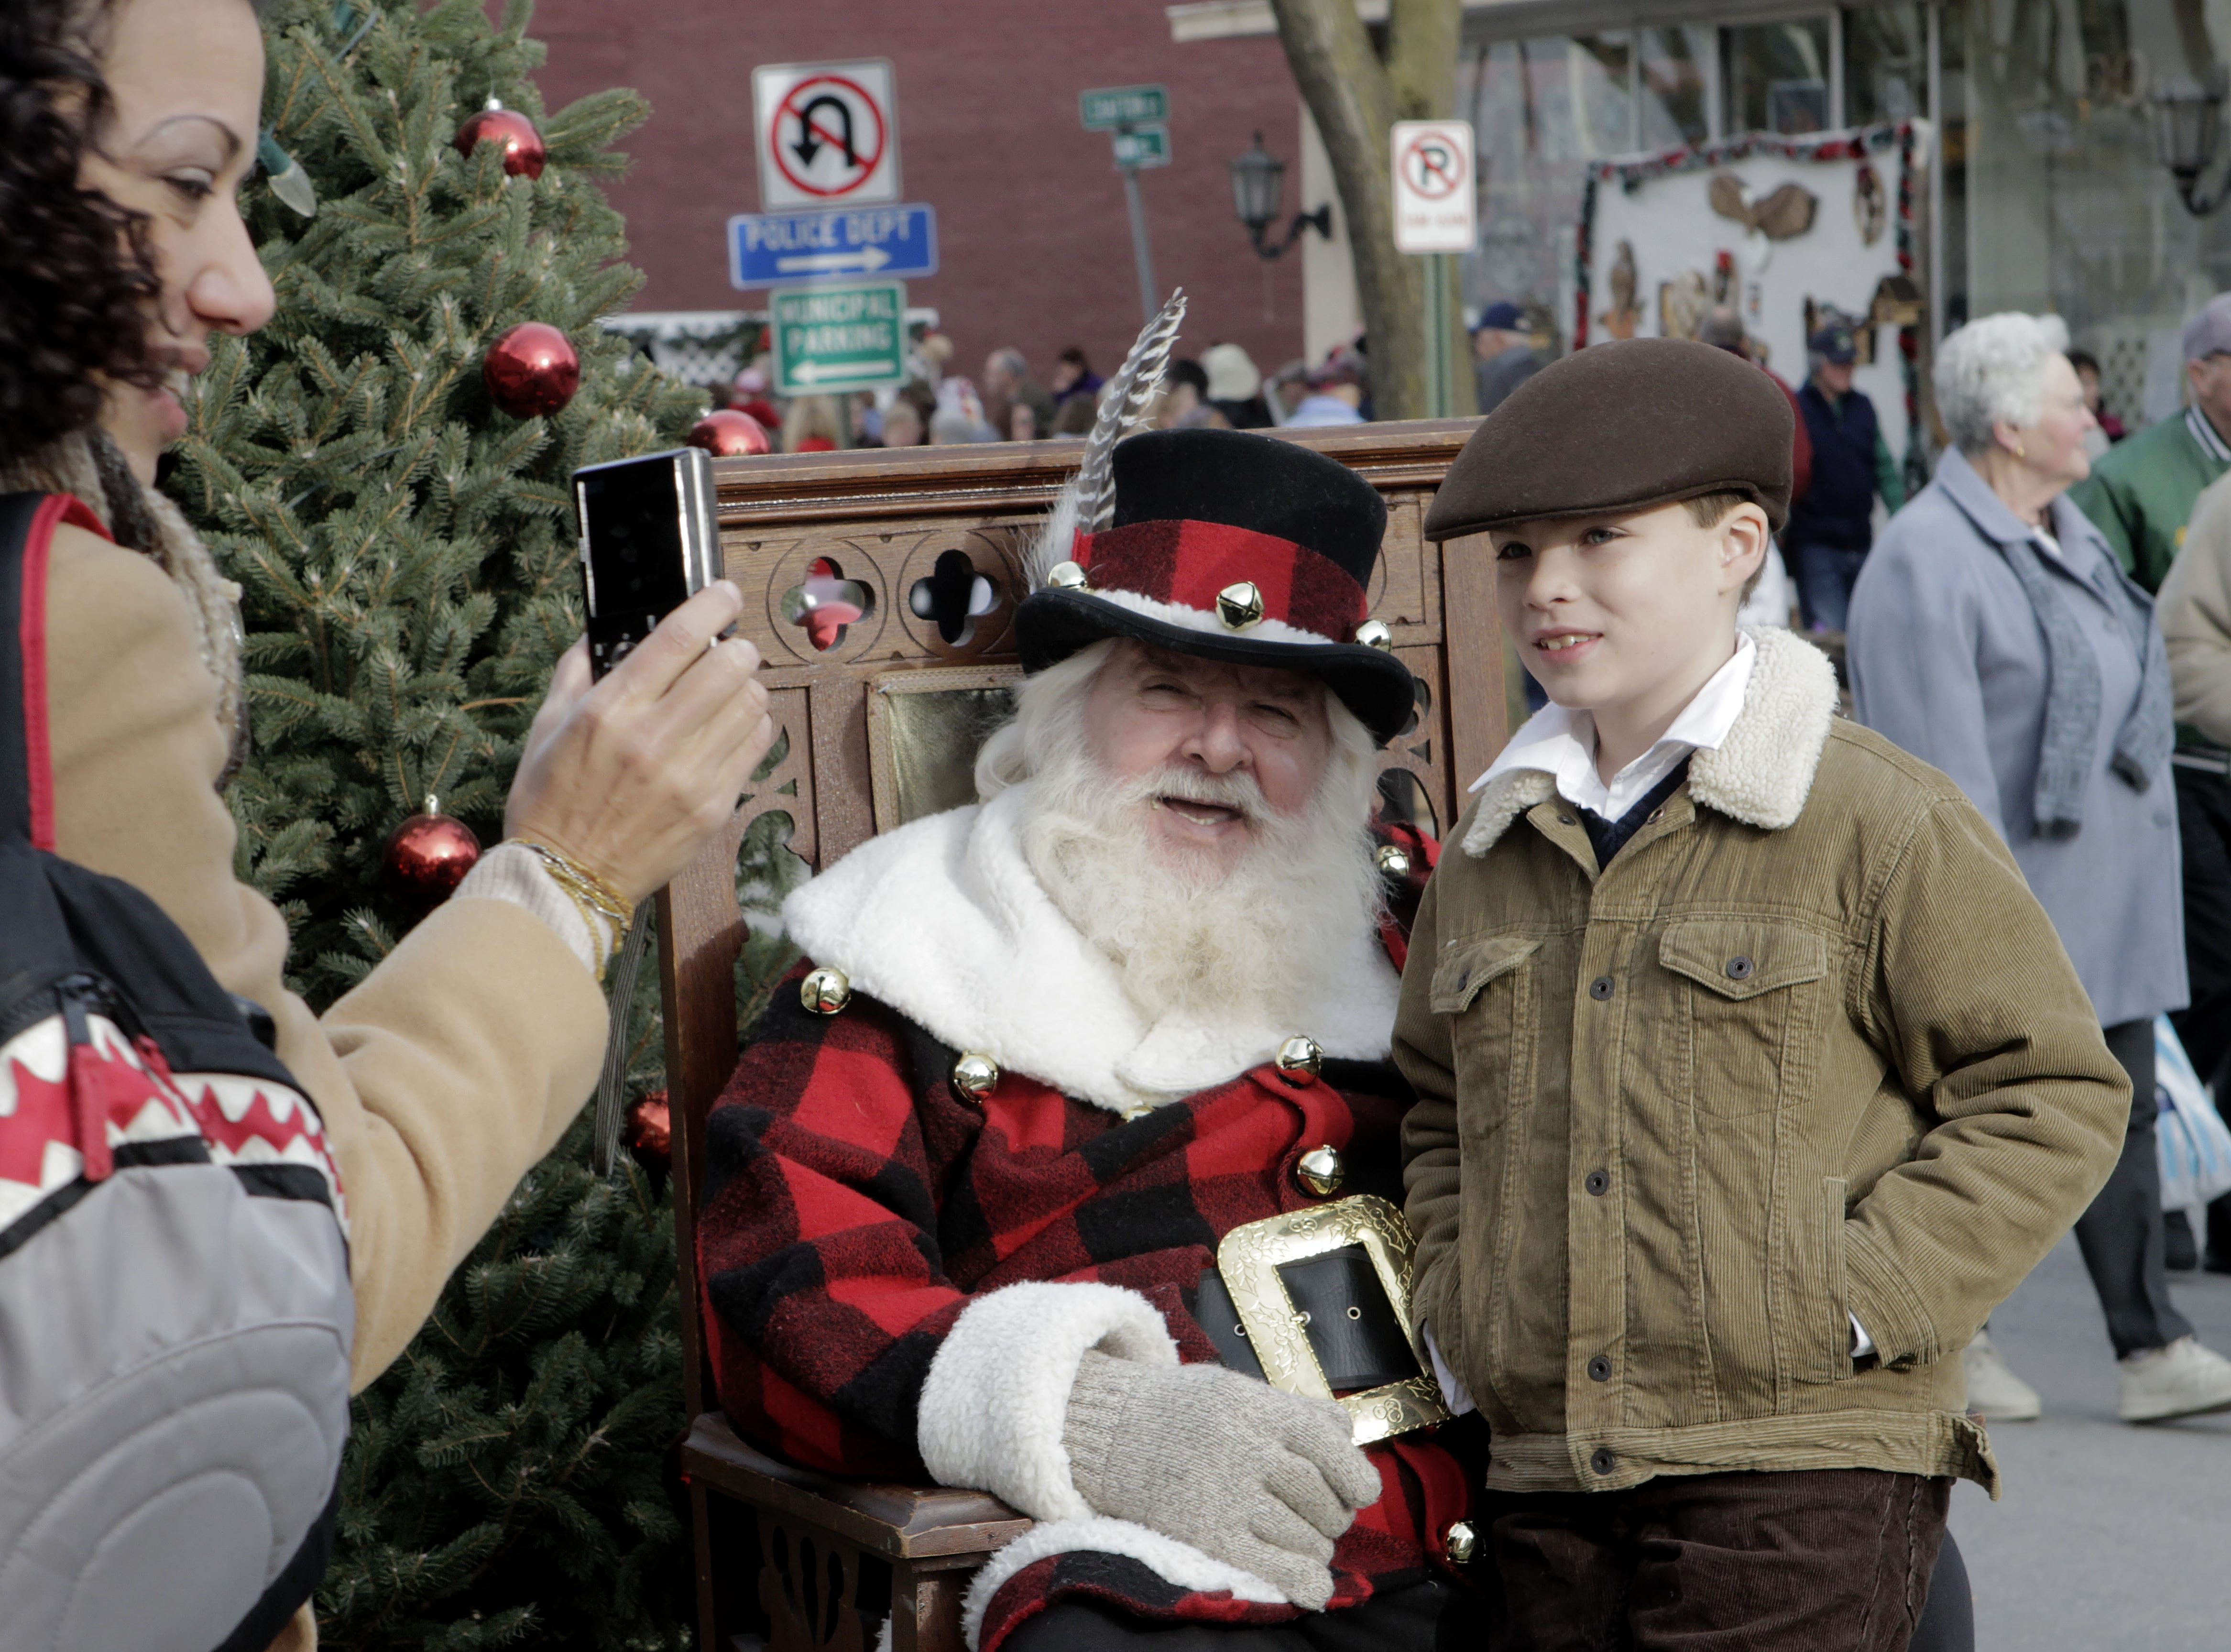 Visitors to the 2013 annual Dickens of a Christmas in Wellsboro snap photos with Santa Claus.